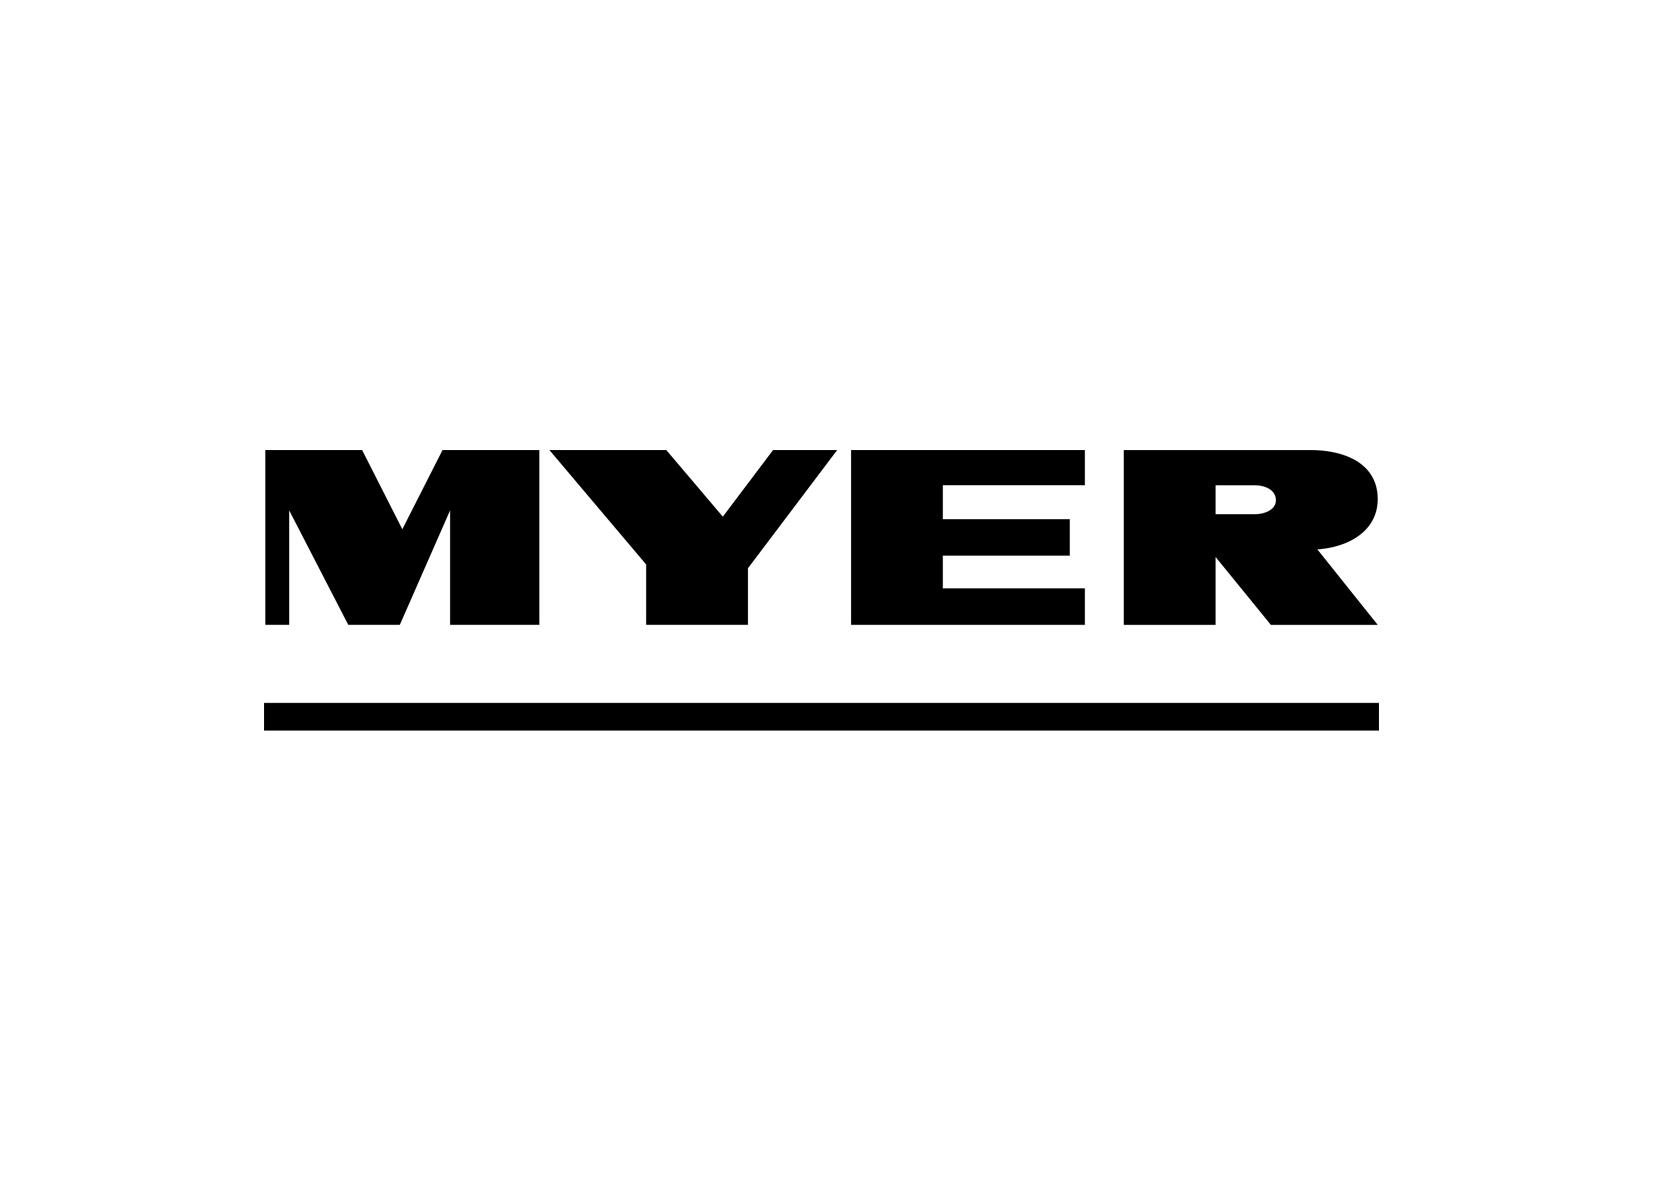 highway brands_0004_myer.jpg